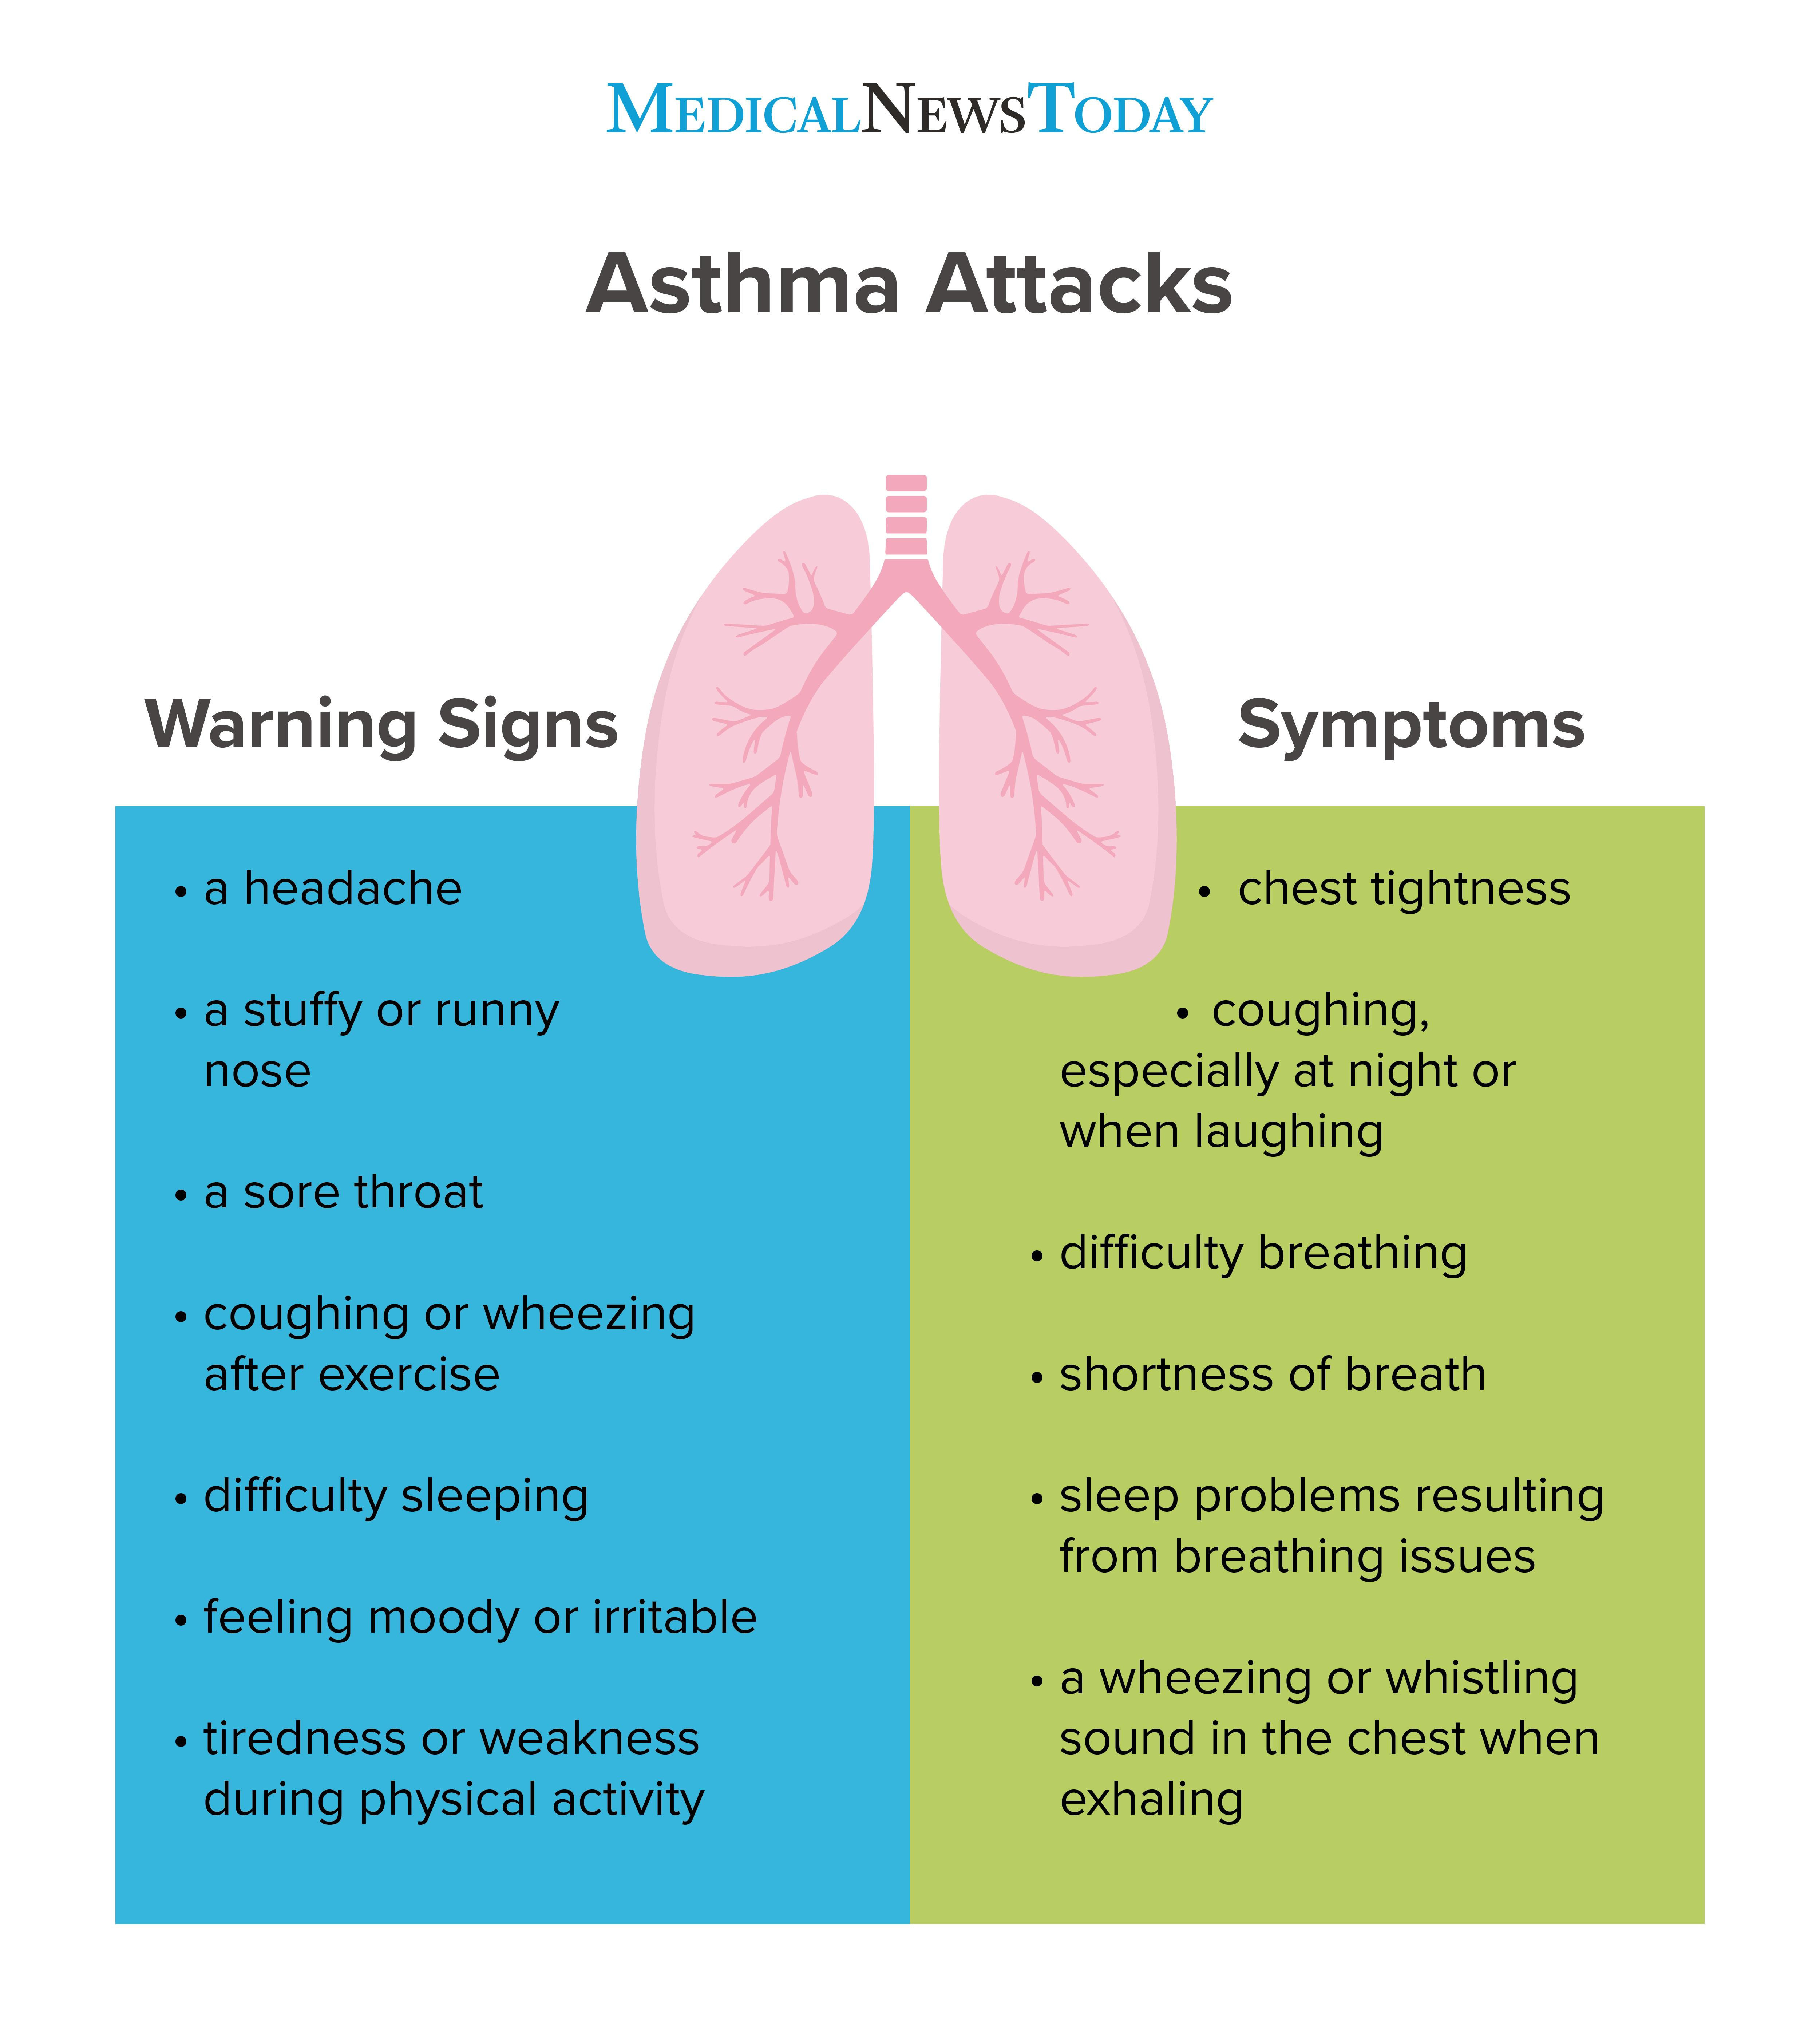 Asthma attacks infographic <br>Image credit: Stephen Kelly, 2019</br>